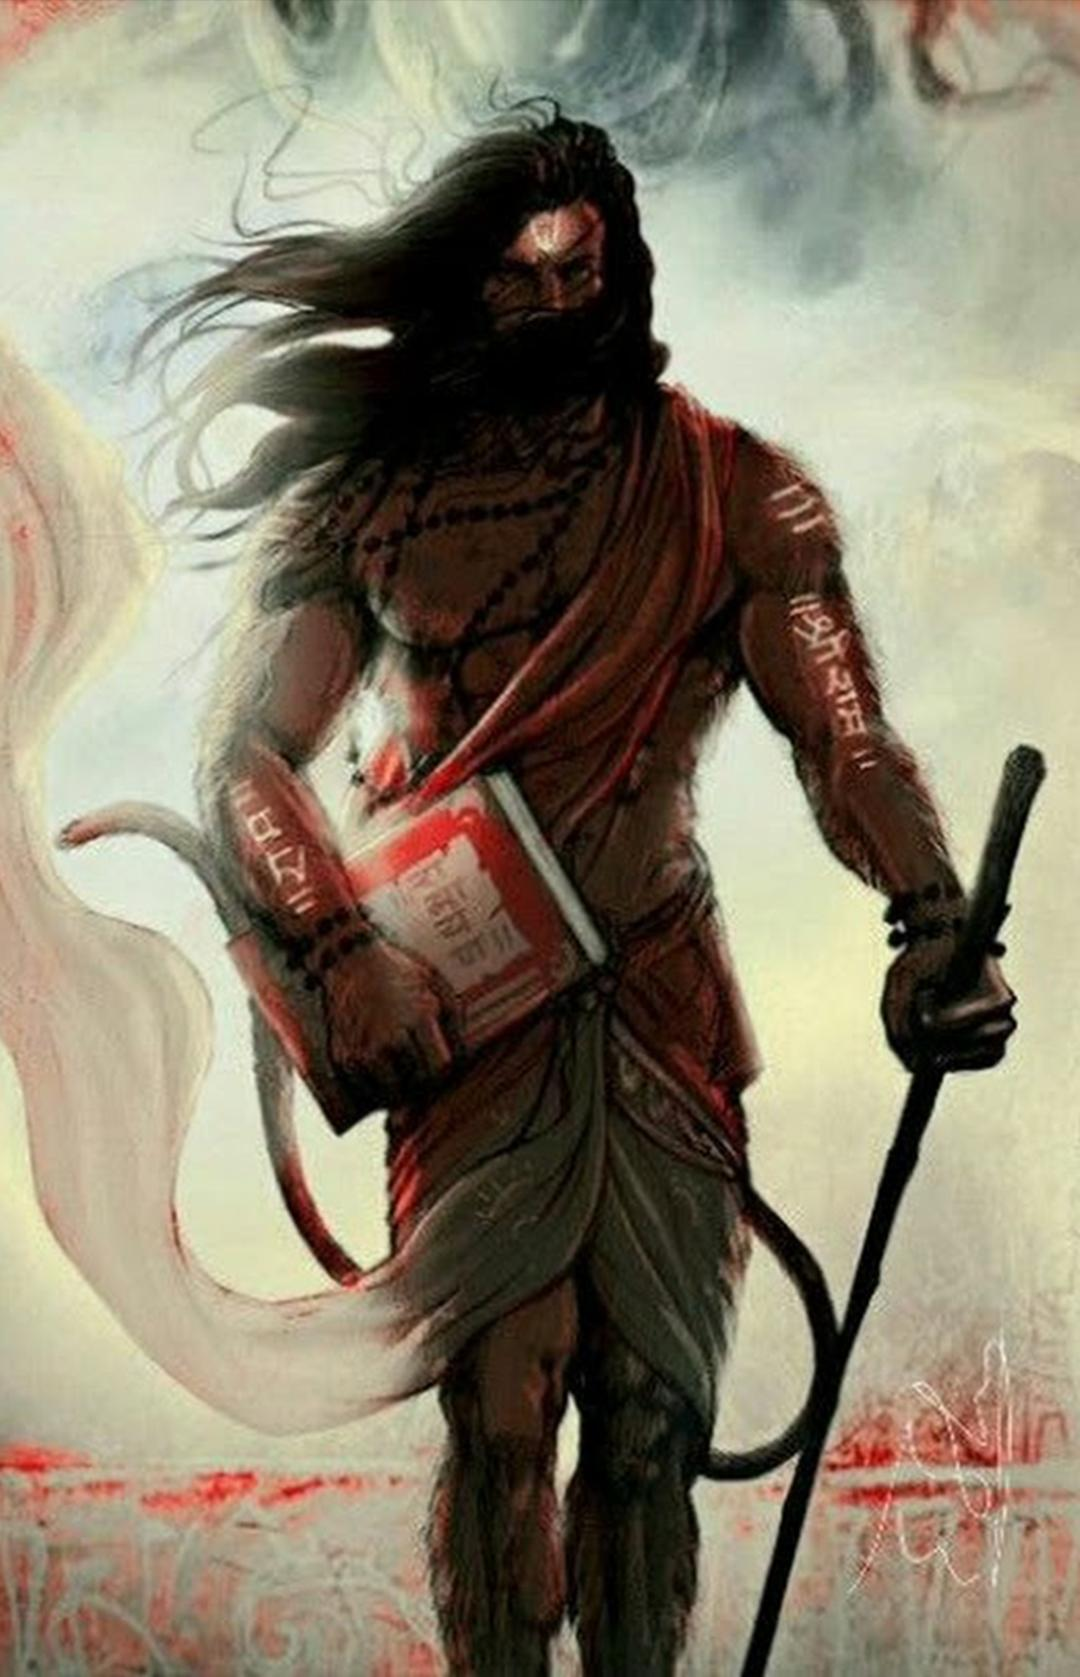 Mahakal Hd Wallpapers 2018 For Android Apk Download